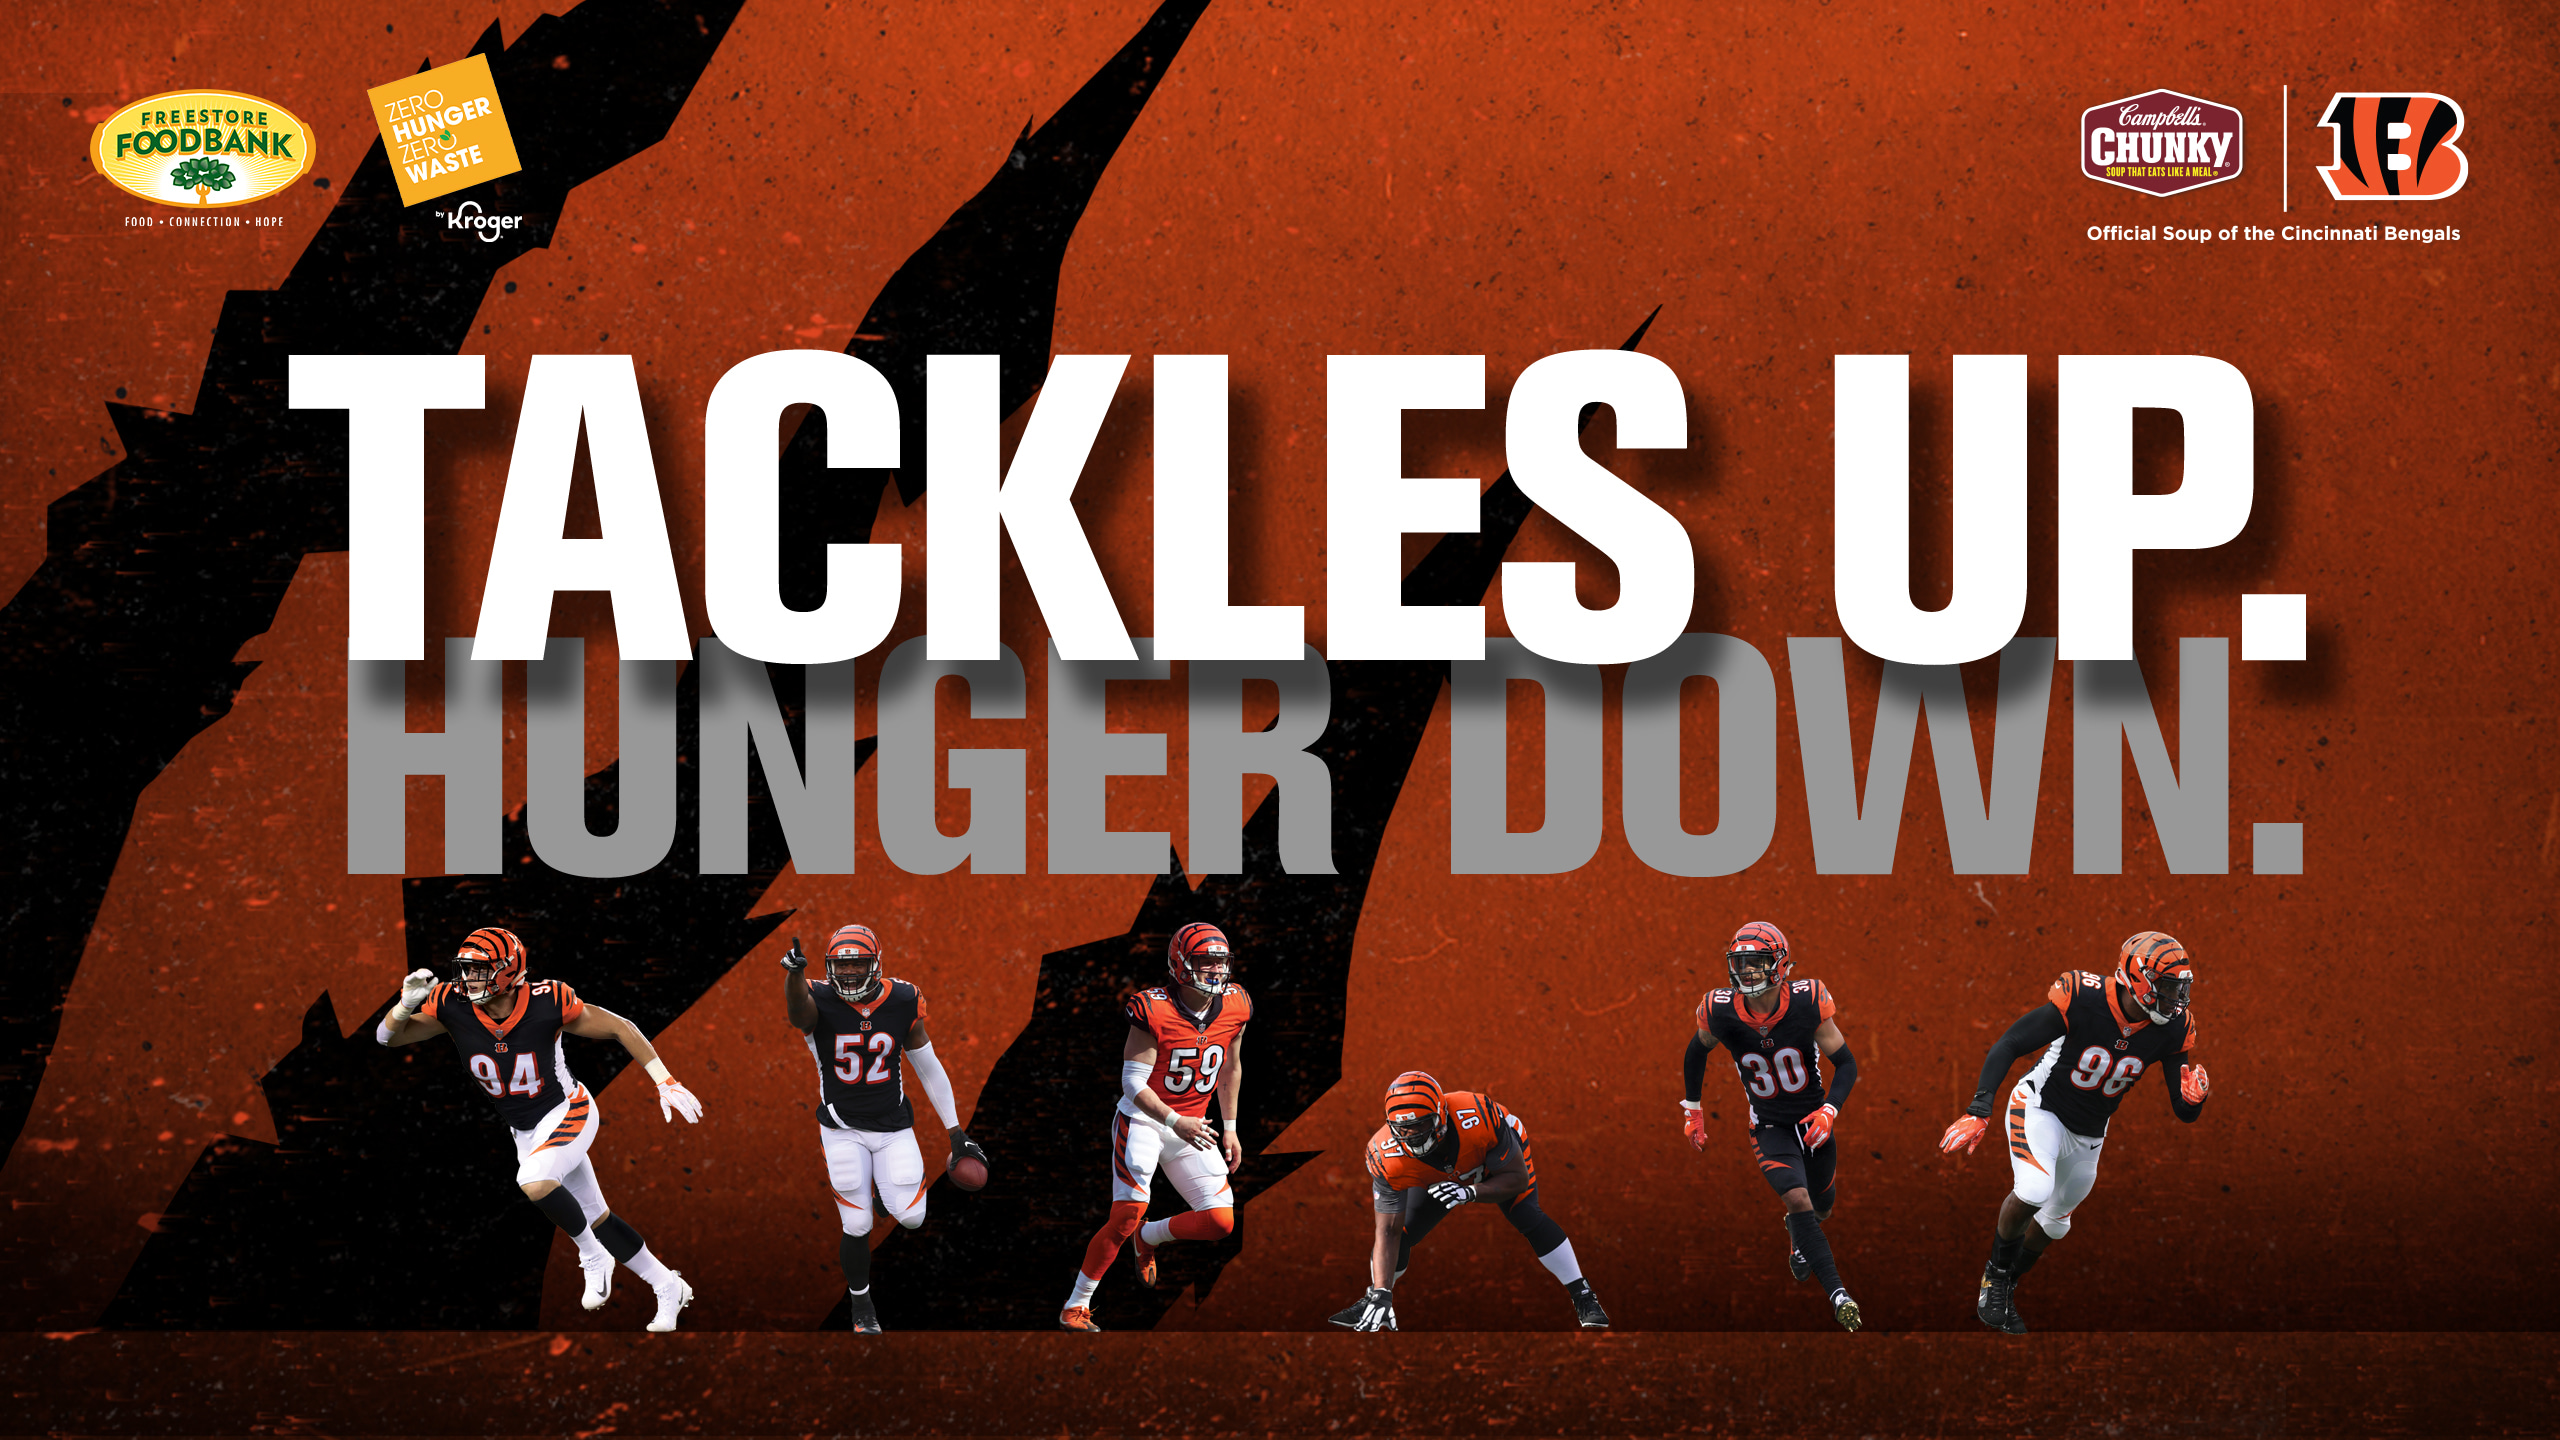 Campbell's Tackle Hunger Campaign